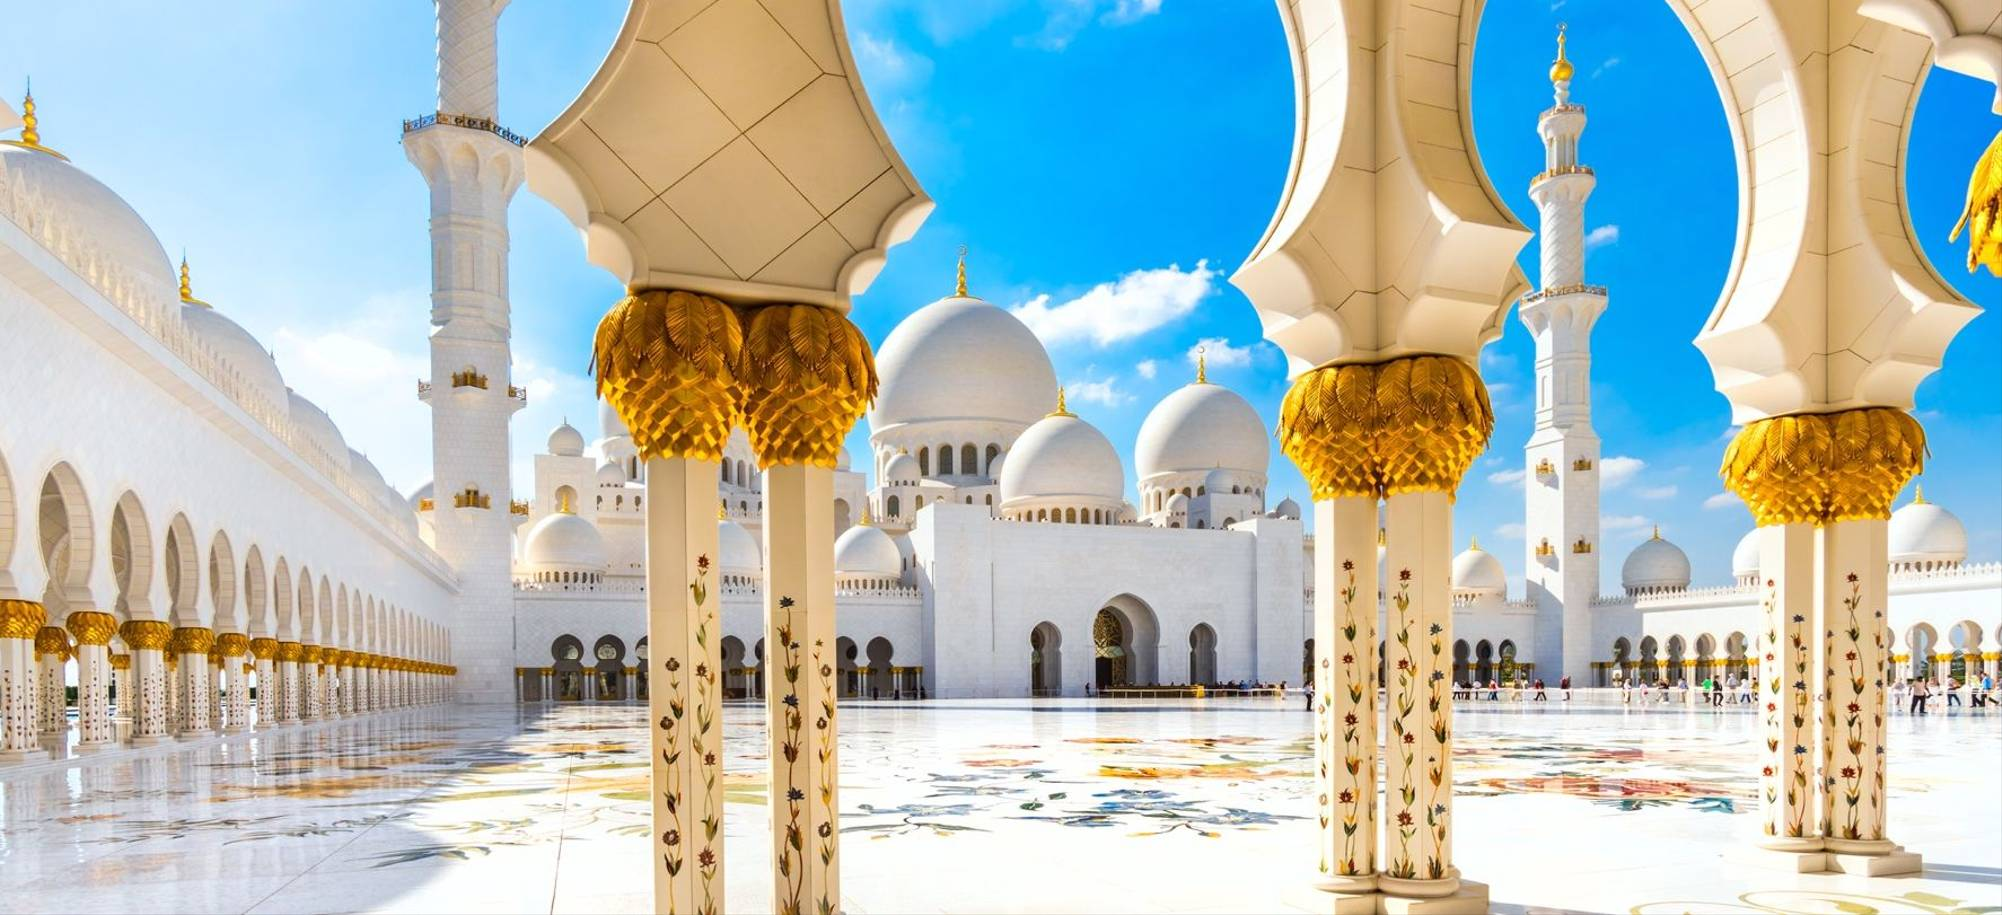 9 10 Day   Abu Dhabi  Sheikh Zayed Mosque   Itinerary Desktop